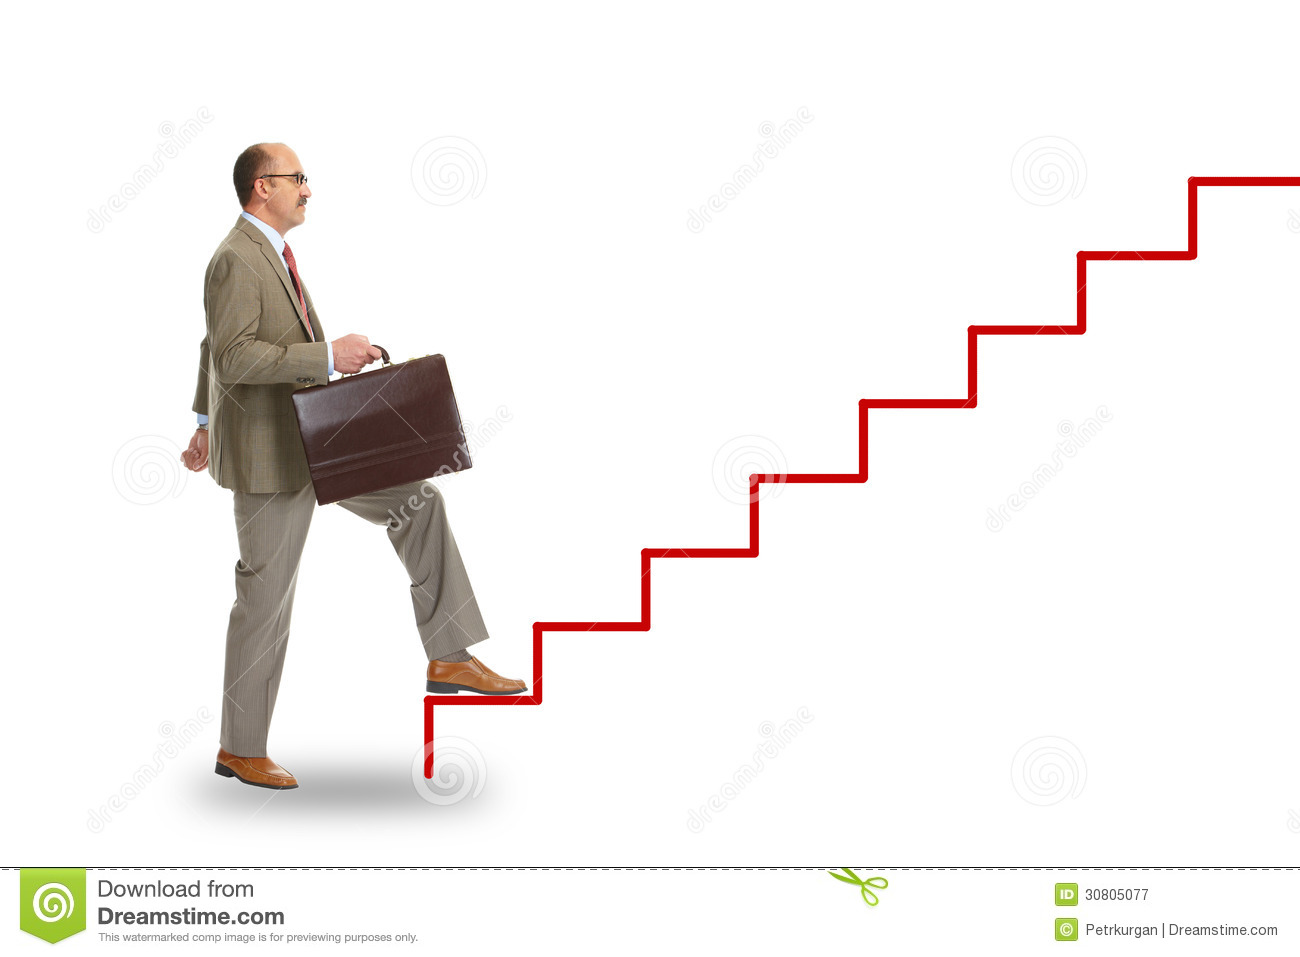 65 >> Businessman Walking On Drawing Stairs Royalty Free Stock Photography - Image: 30805077